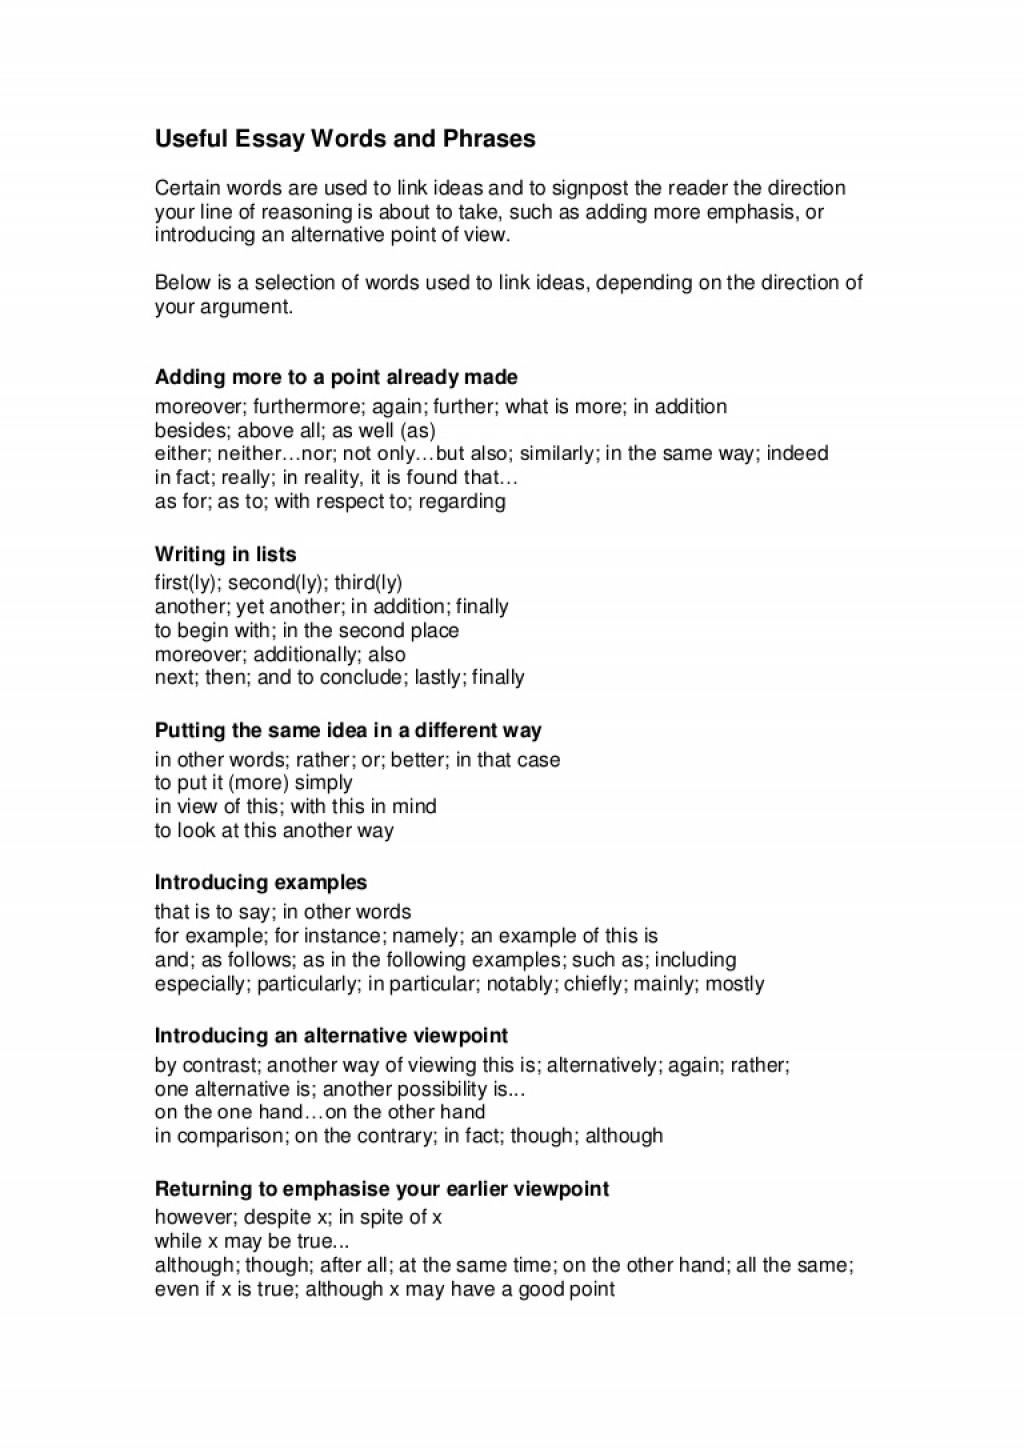 004 Words To Not Use In Essays Writtenassignments2usefulessaywordsandphrases Phpapp02 Thumbnail Essay Unique Persuasive An Expository Large